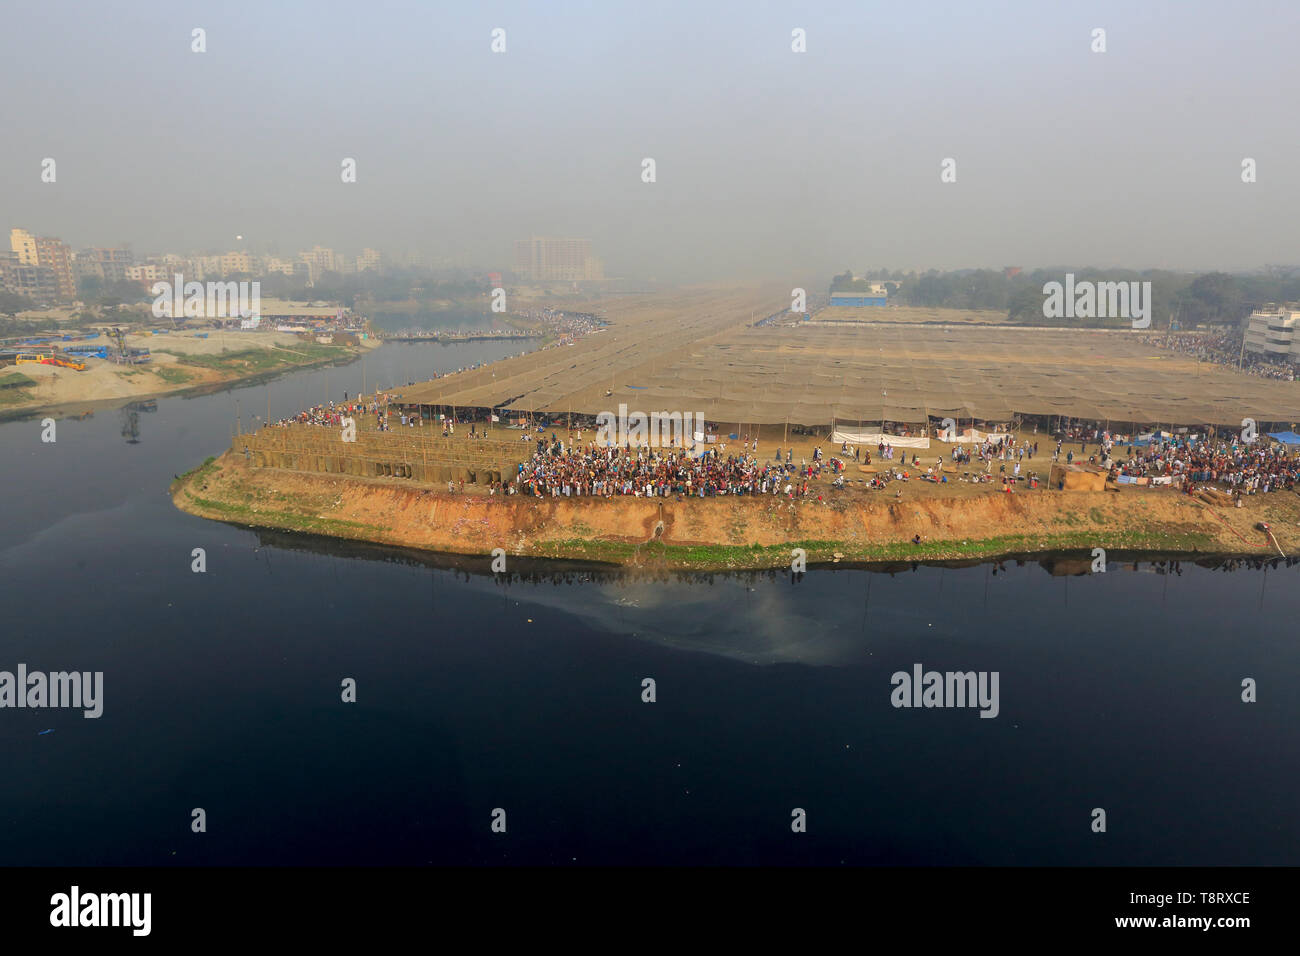 Tents are being pitched on the bank of river Turag to accommodate Muslims who will participate in Biswa Ijtema, the second largest religious congregat - Stock Image